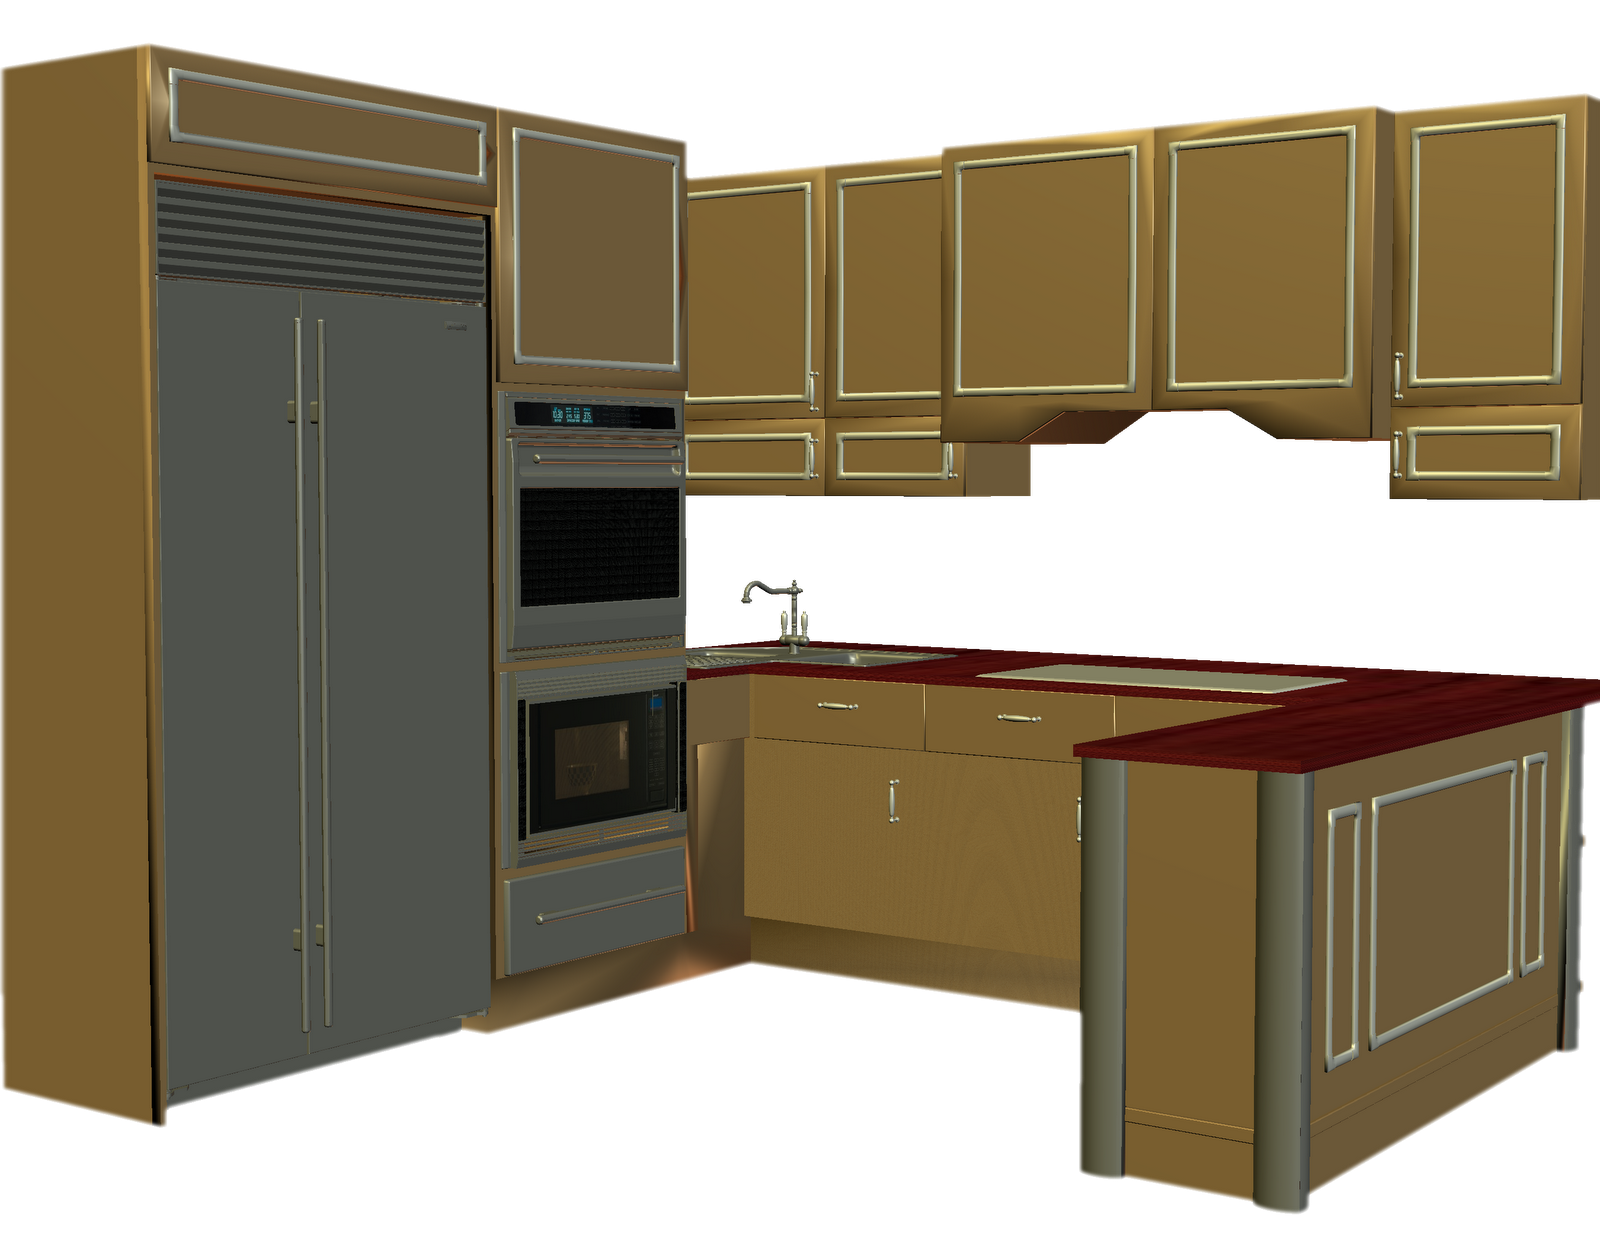 banner . Kitchen counter clipart.